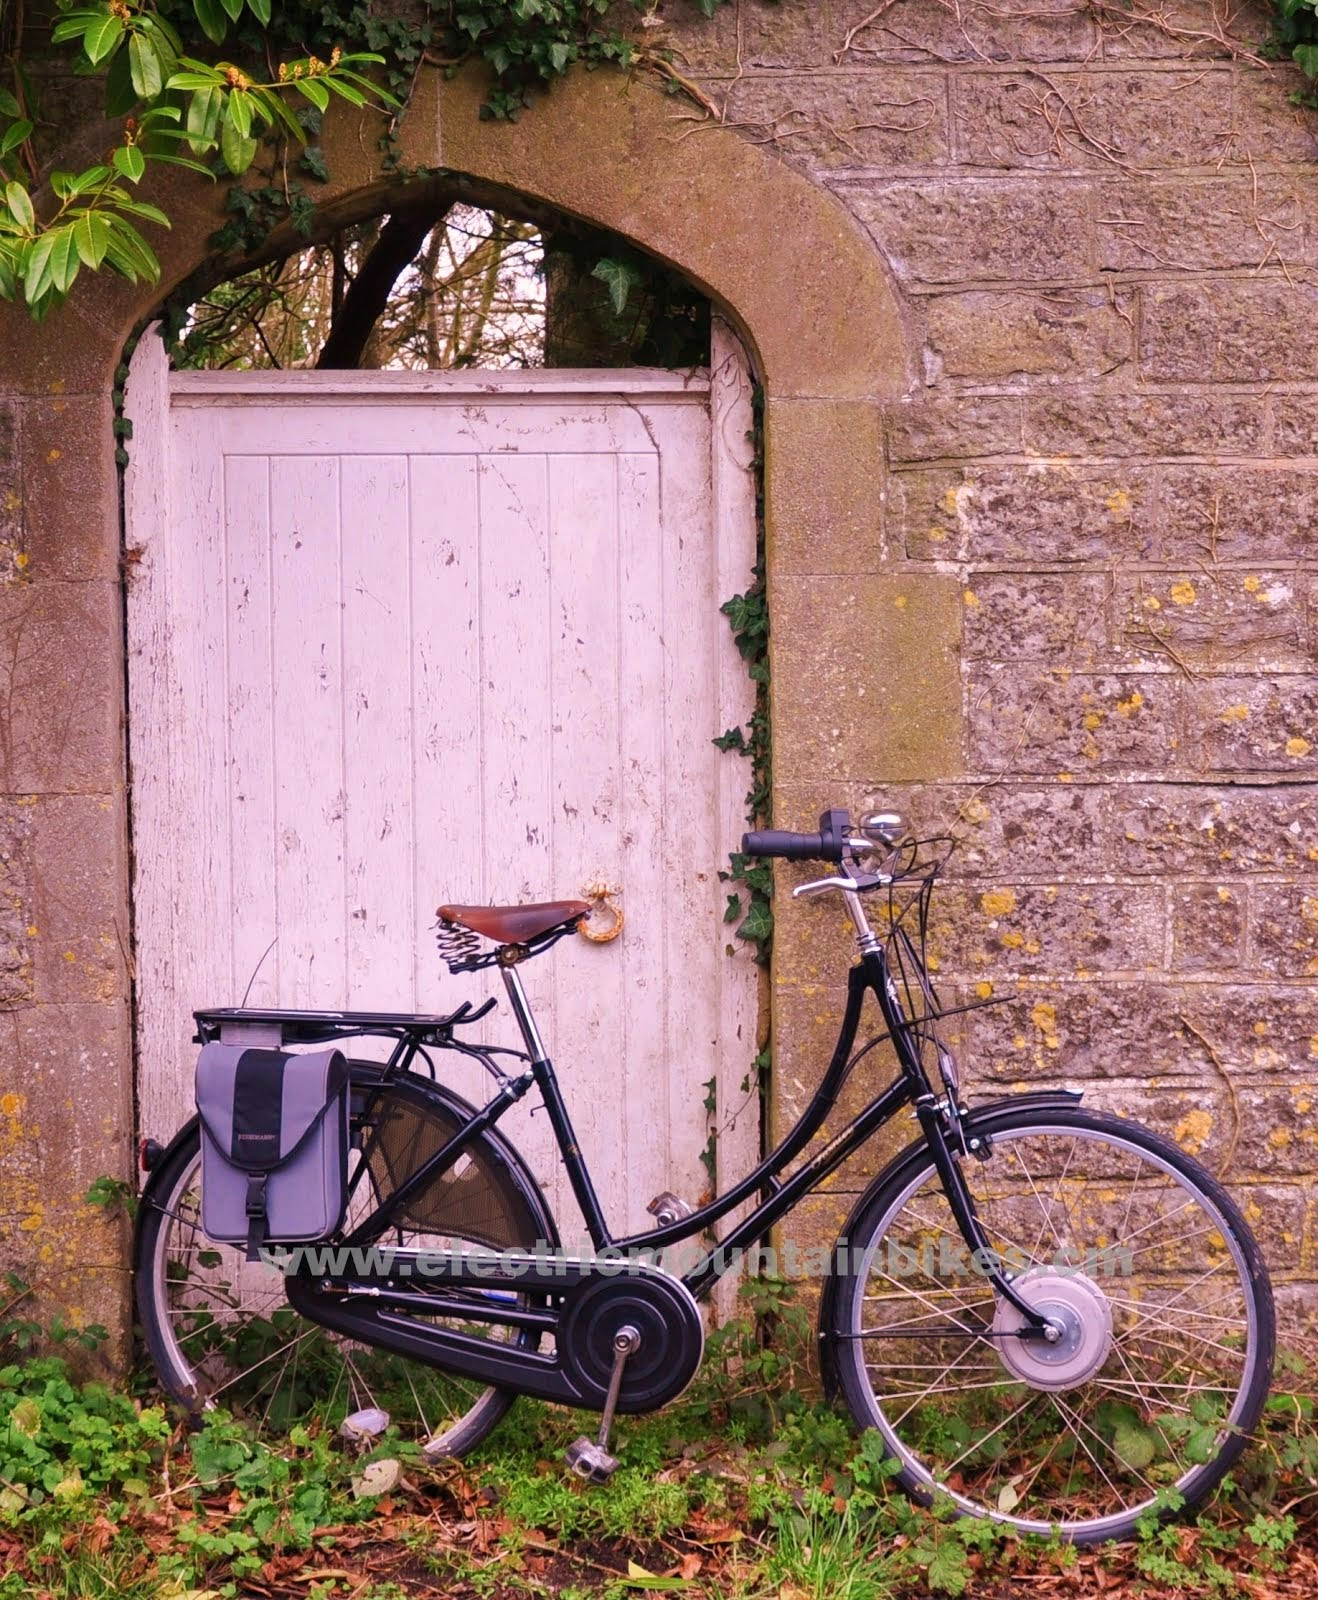 Pashley Electric Bike